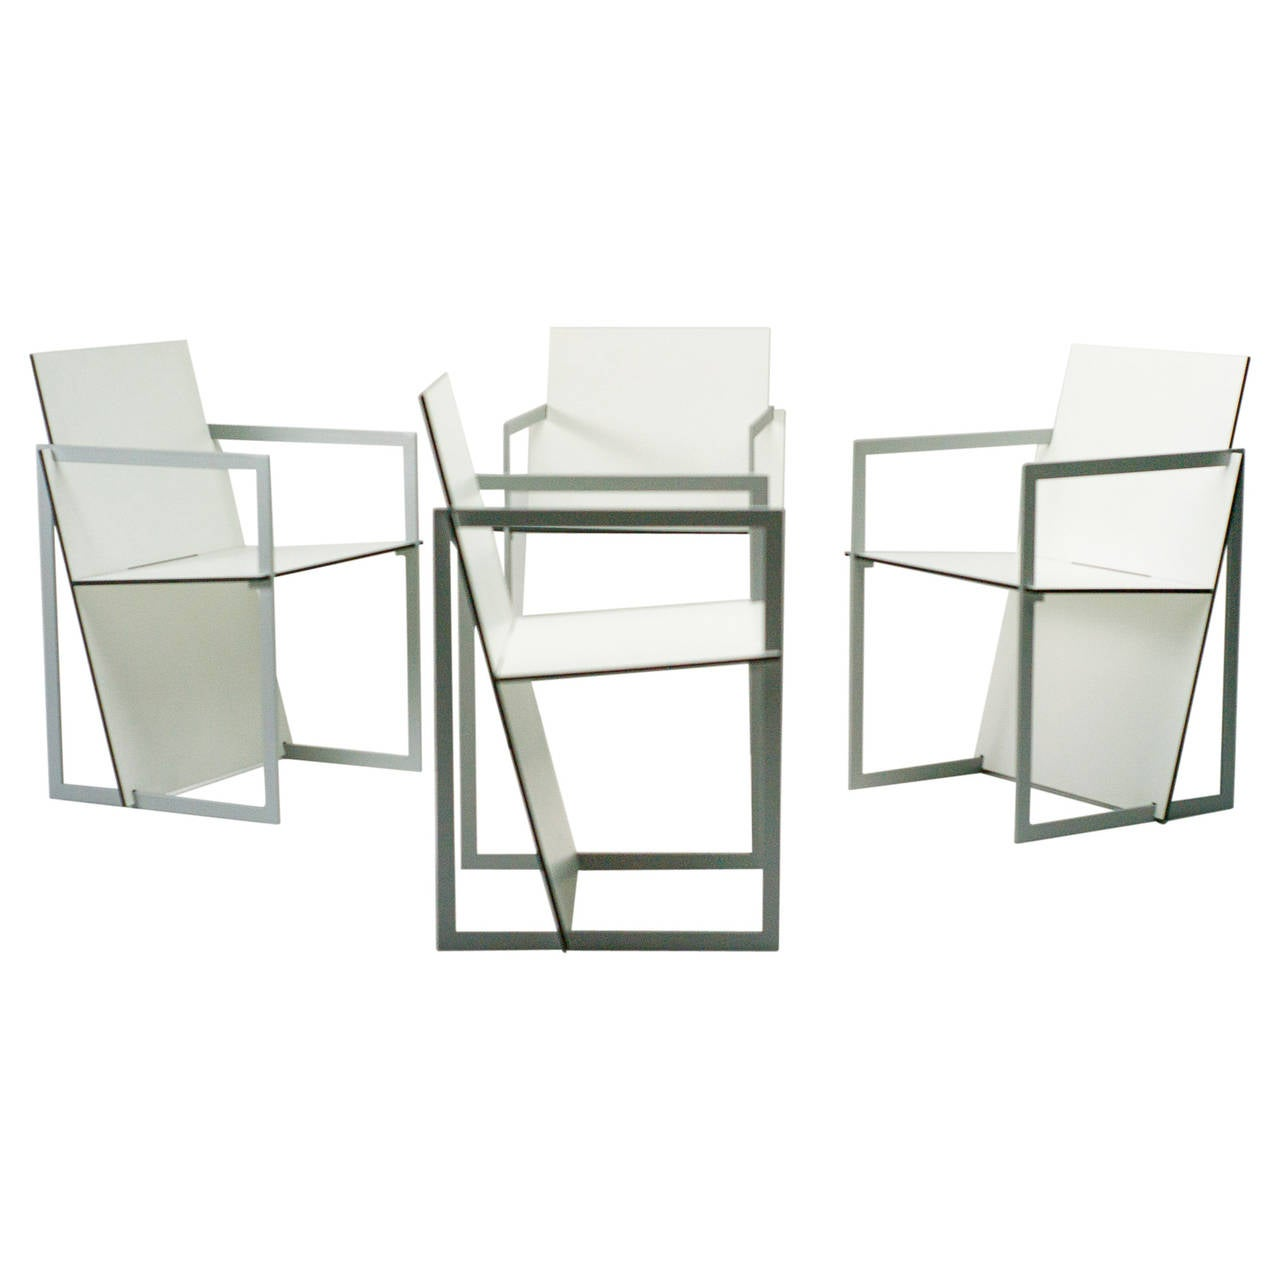 Dutch design spectro chairs inspired by de stijl and for Dutch design chair karton